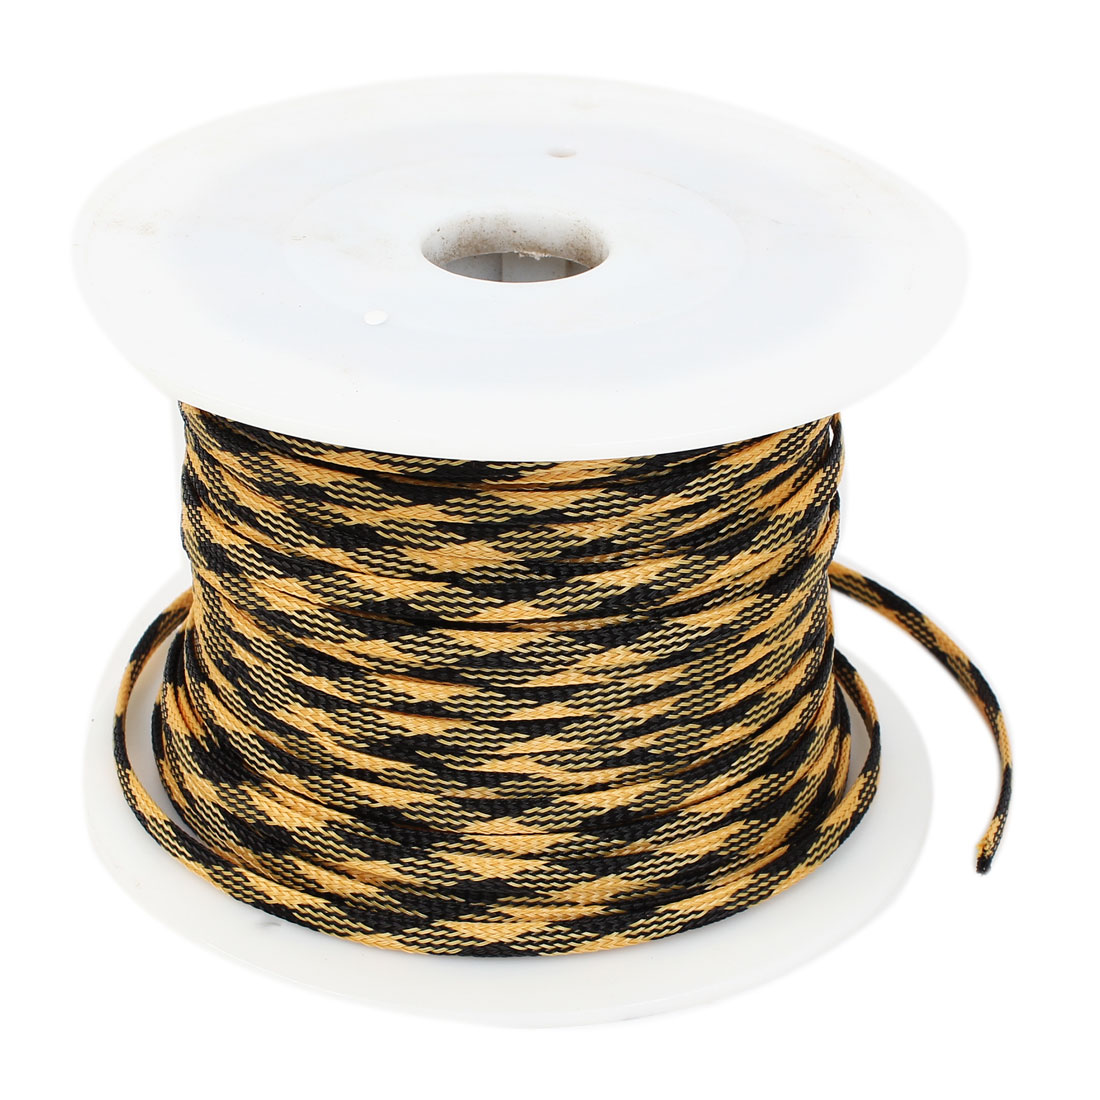 Car Audio Braided Polyester Sleeving Cable Cover Yellow Black 100M Length